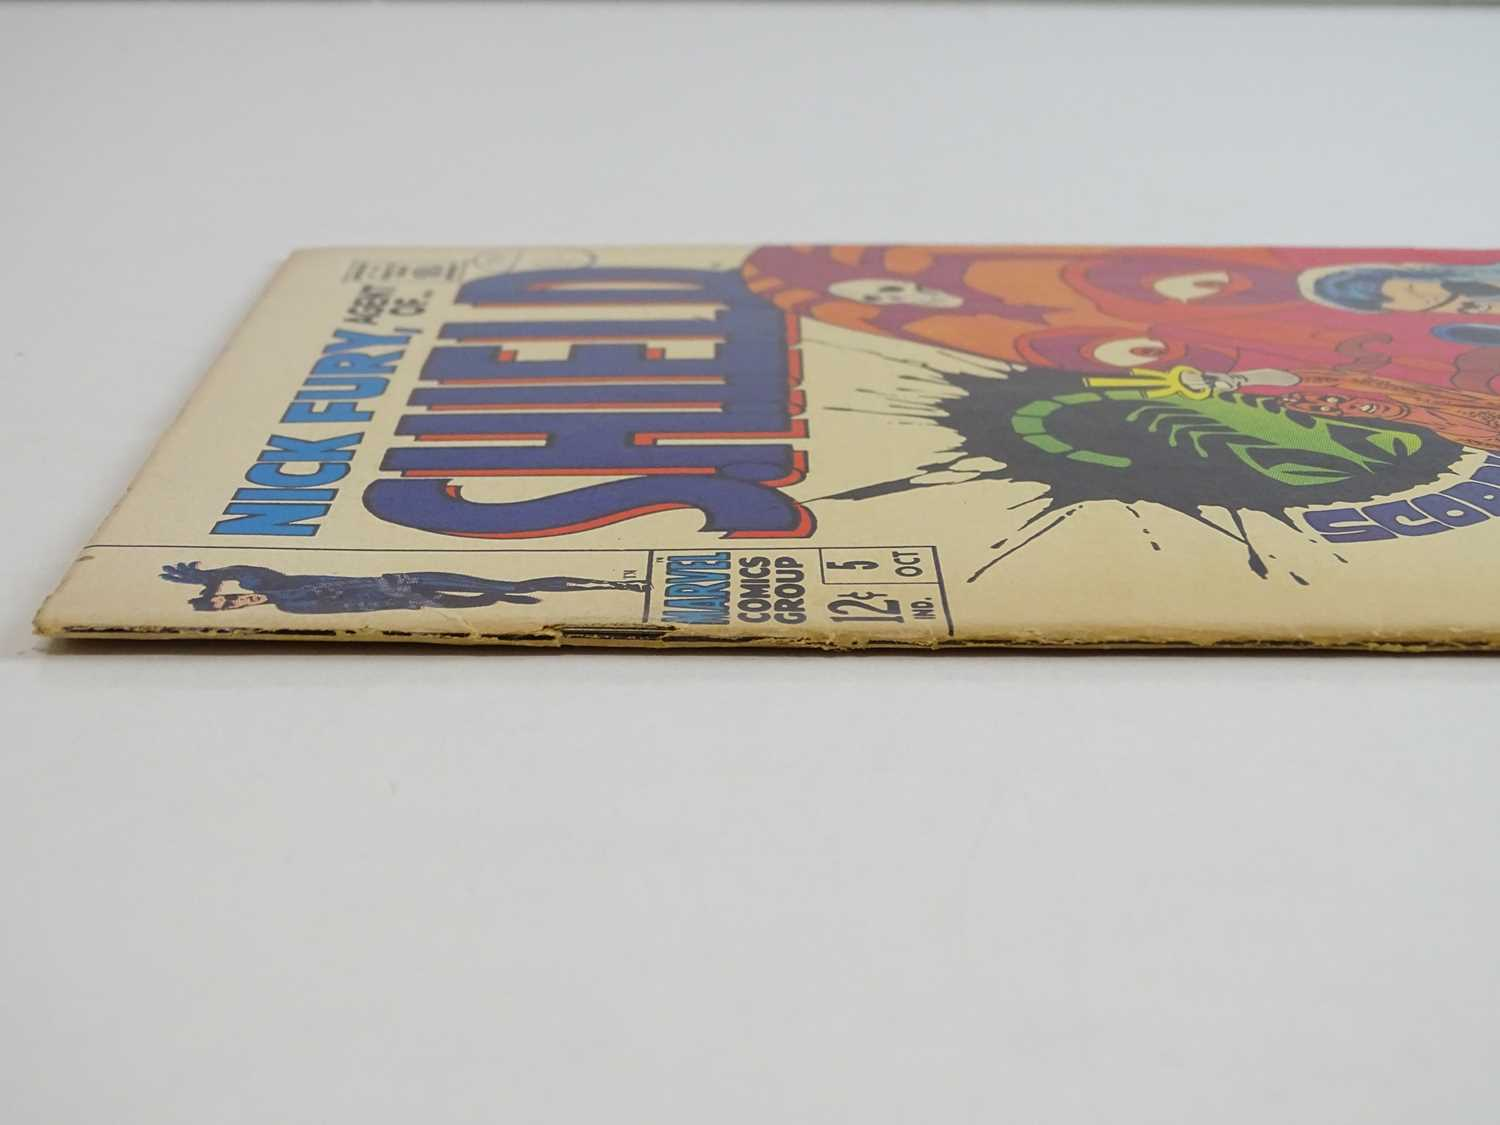 NICK FURY: AGENT OF SHIELD #5 - (1968 - MARVEL - UK Cover Price) - Classic Cover - Jim Steranko - Image 8 of 9